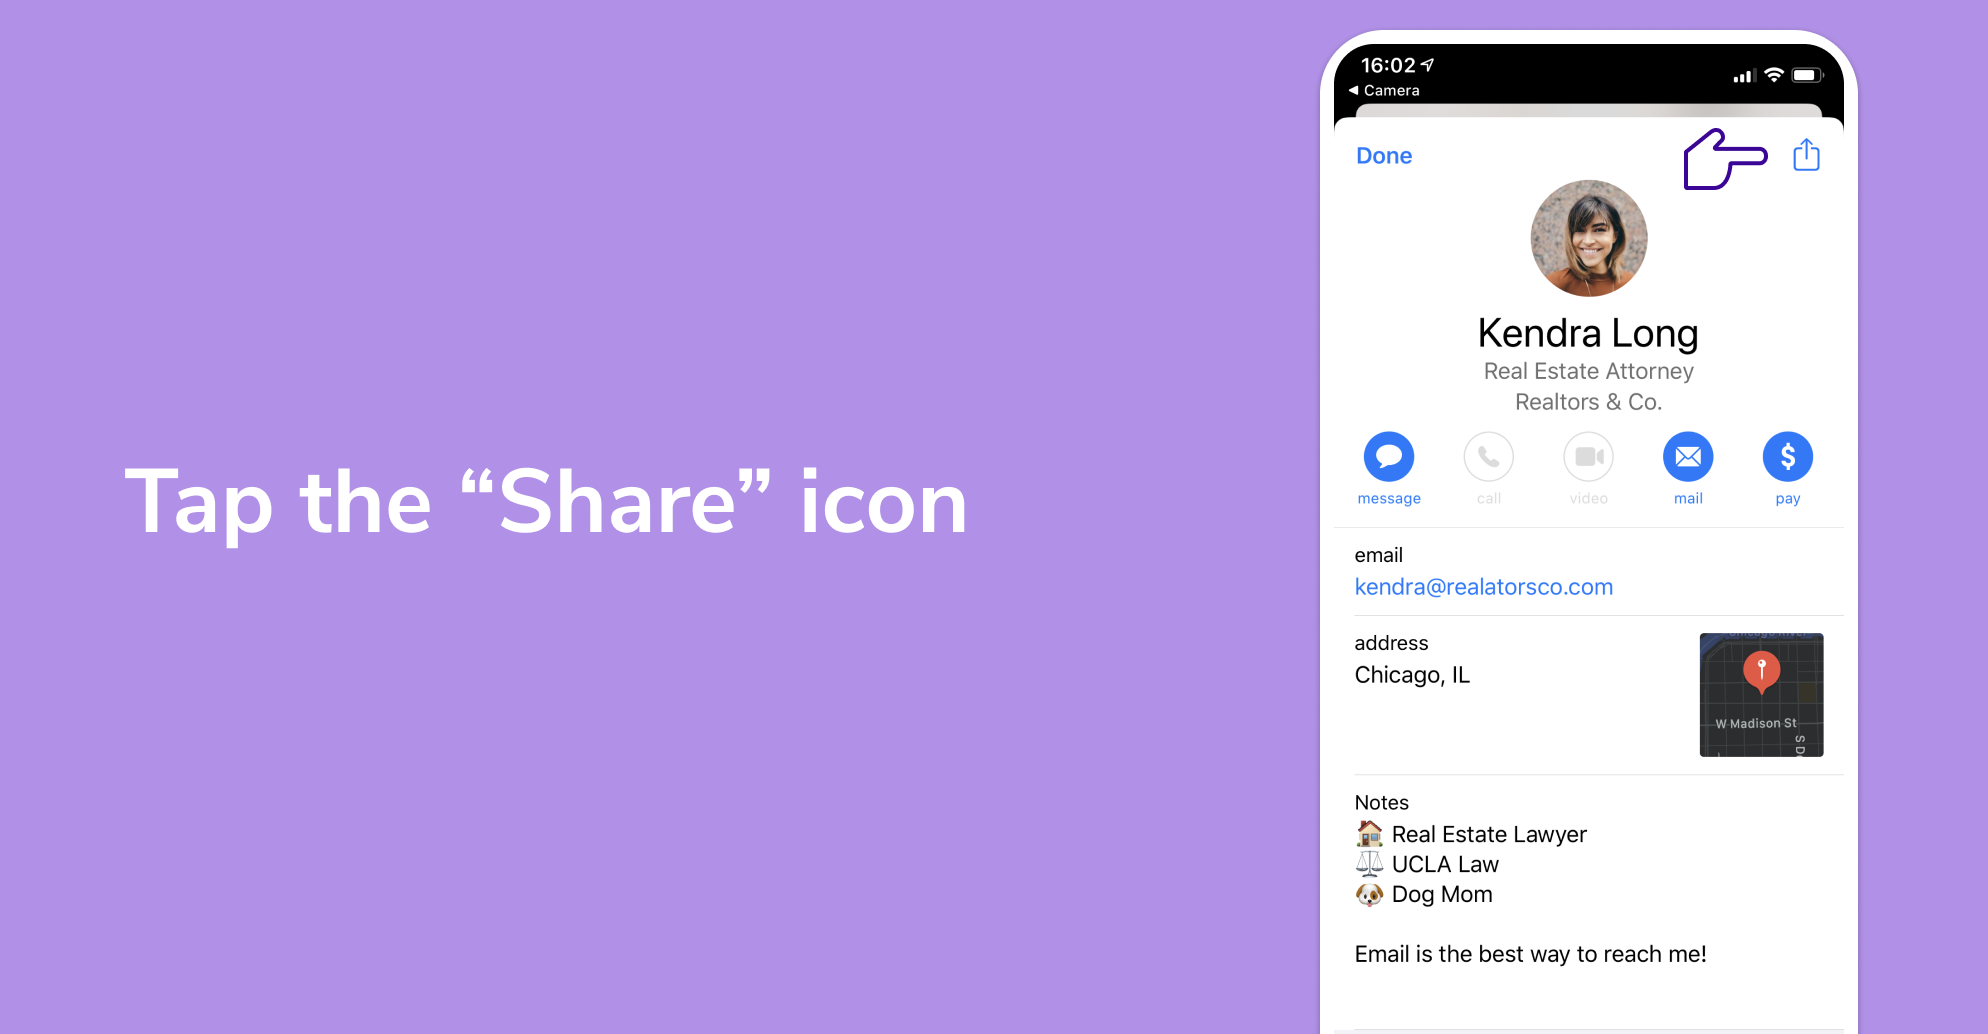 To save a card as a .vcf, tap the share icon on the top right of your phone's screen.